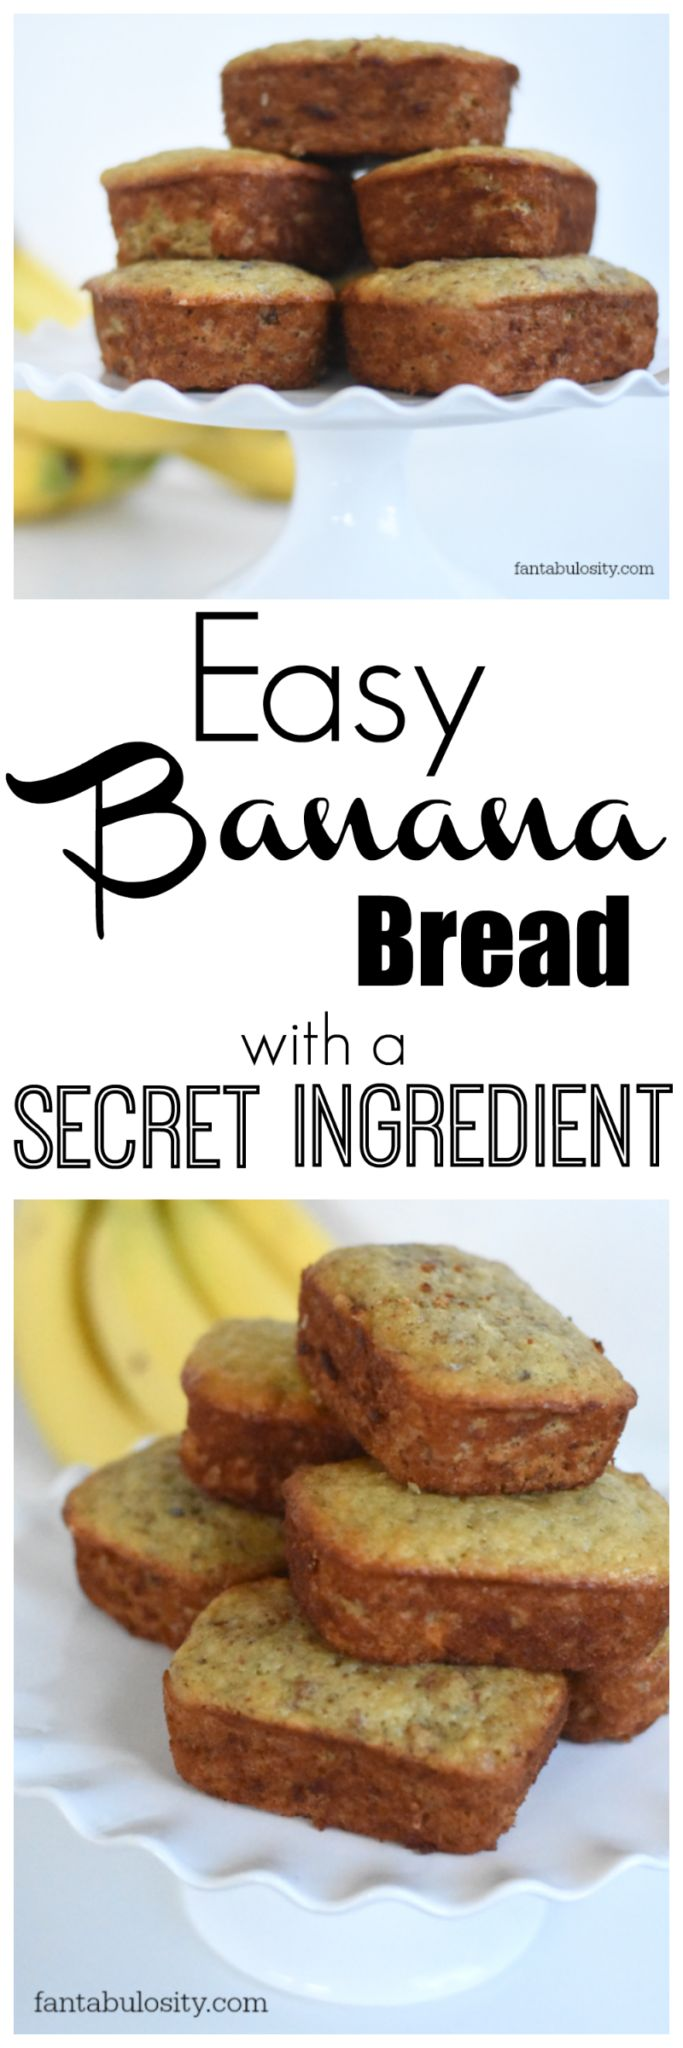 What!! Who knew this would make it moist. This is the best I've had. Easy banana bread recipe for sure. fantabulosity.com